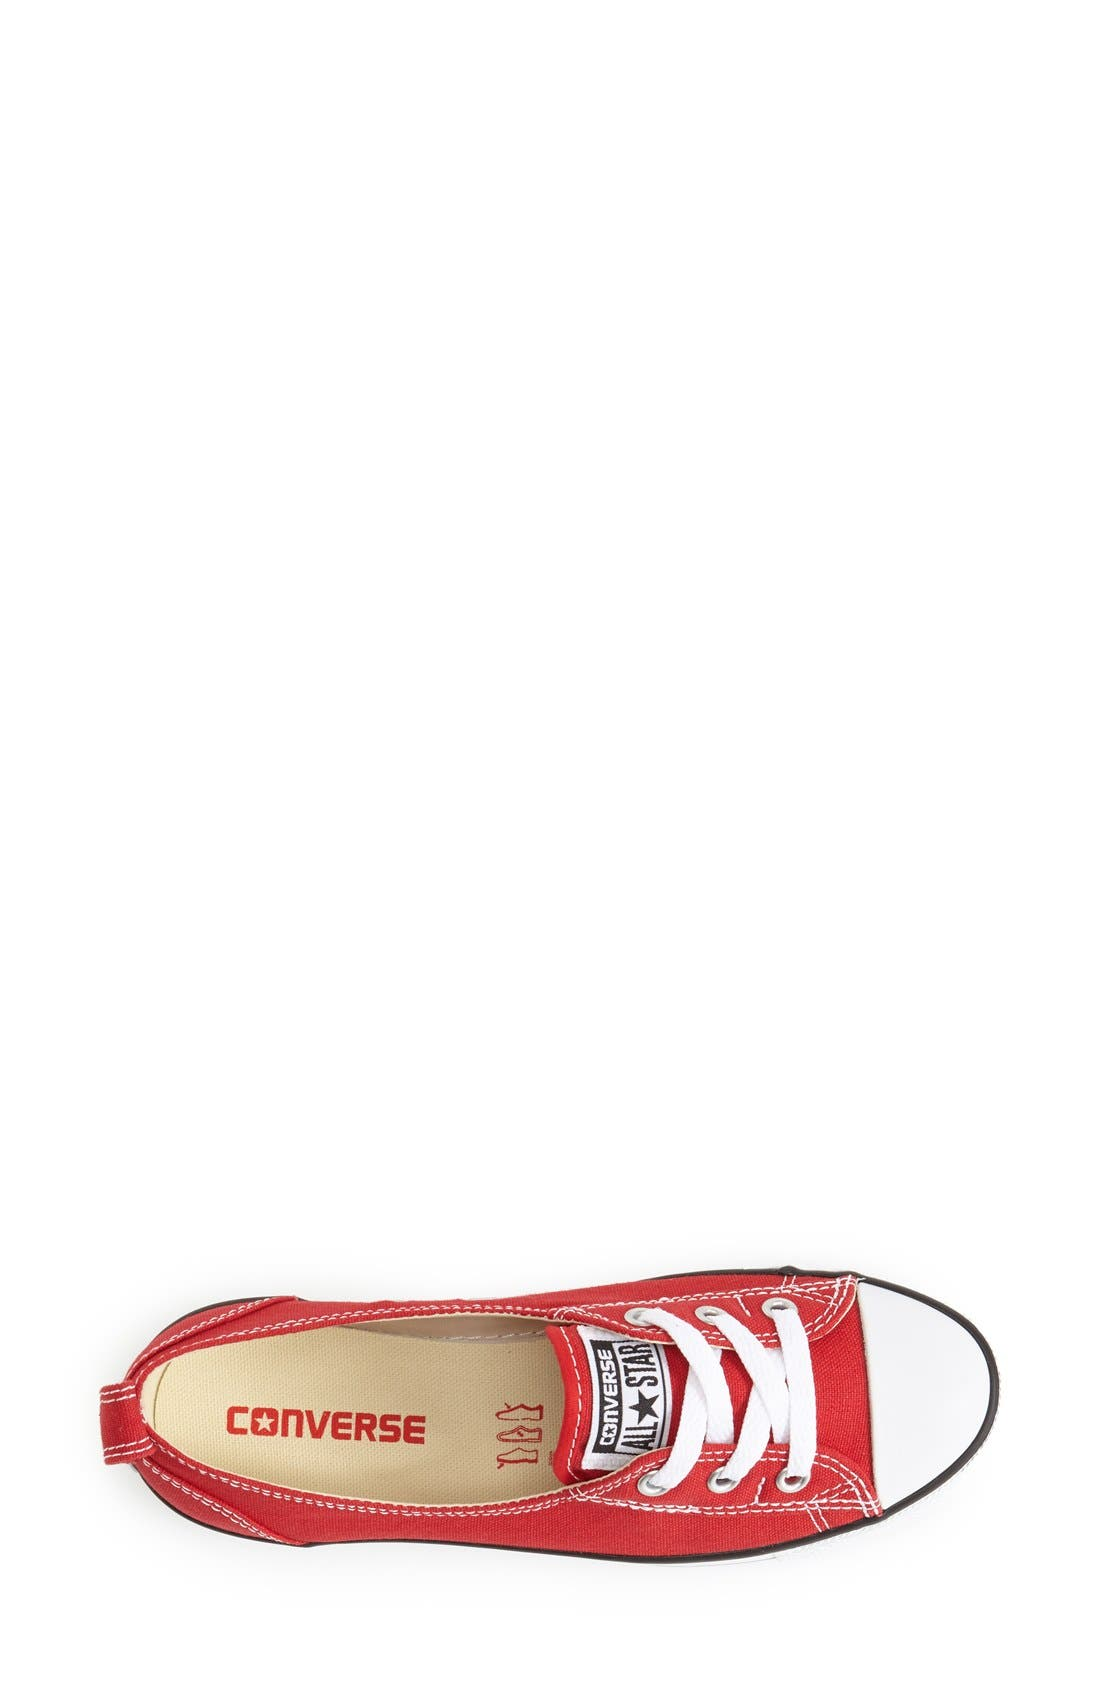 ,                             Chuck Taylor<sup>®</sup> All Star<sup>®</sup> Ballet Canvas Sneaker,                             Alternate thumbnail 22, color,                             600